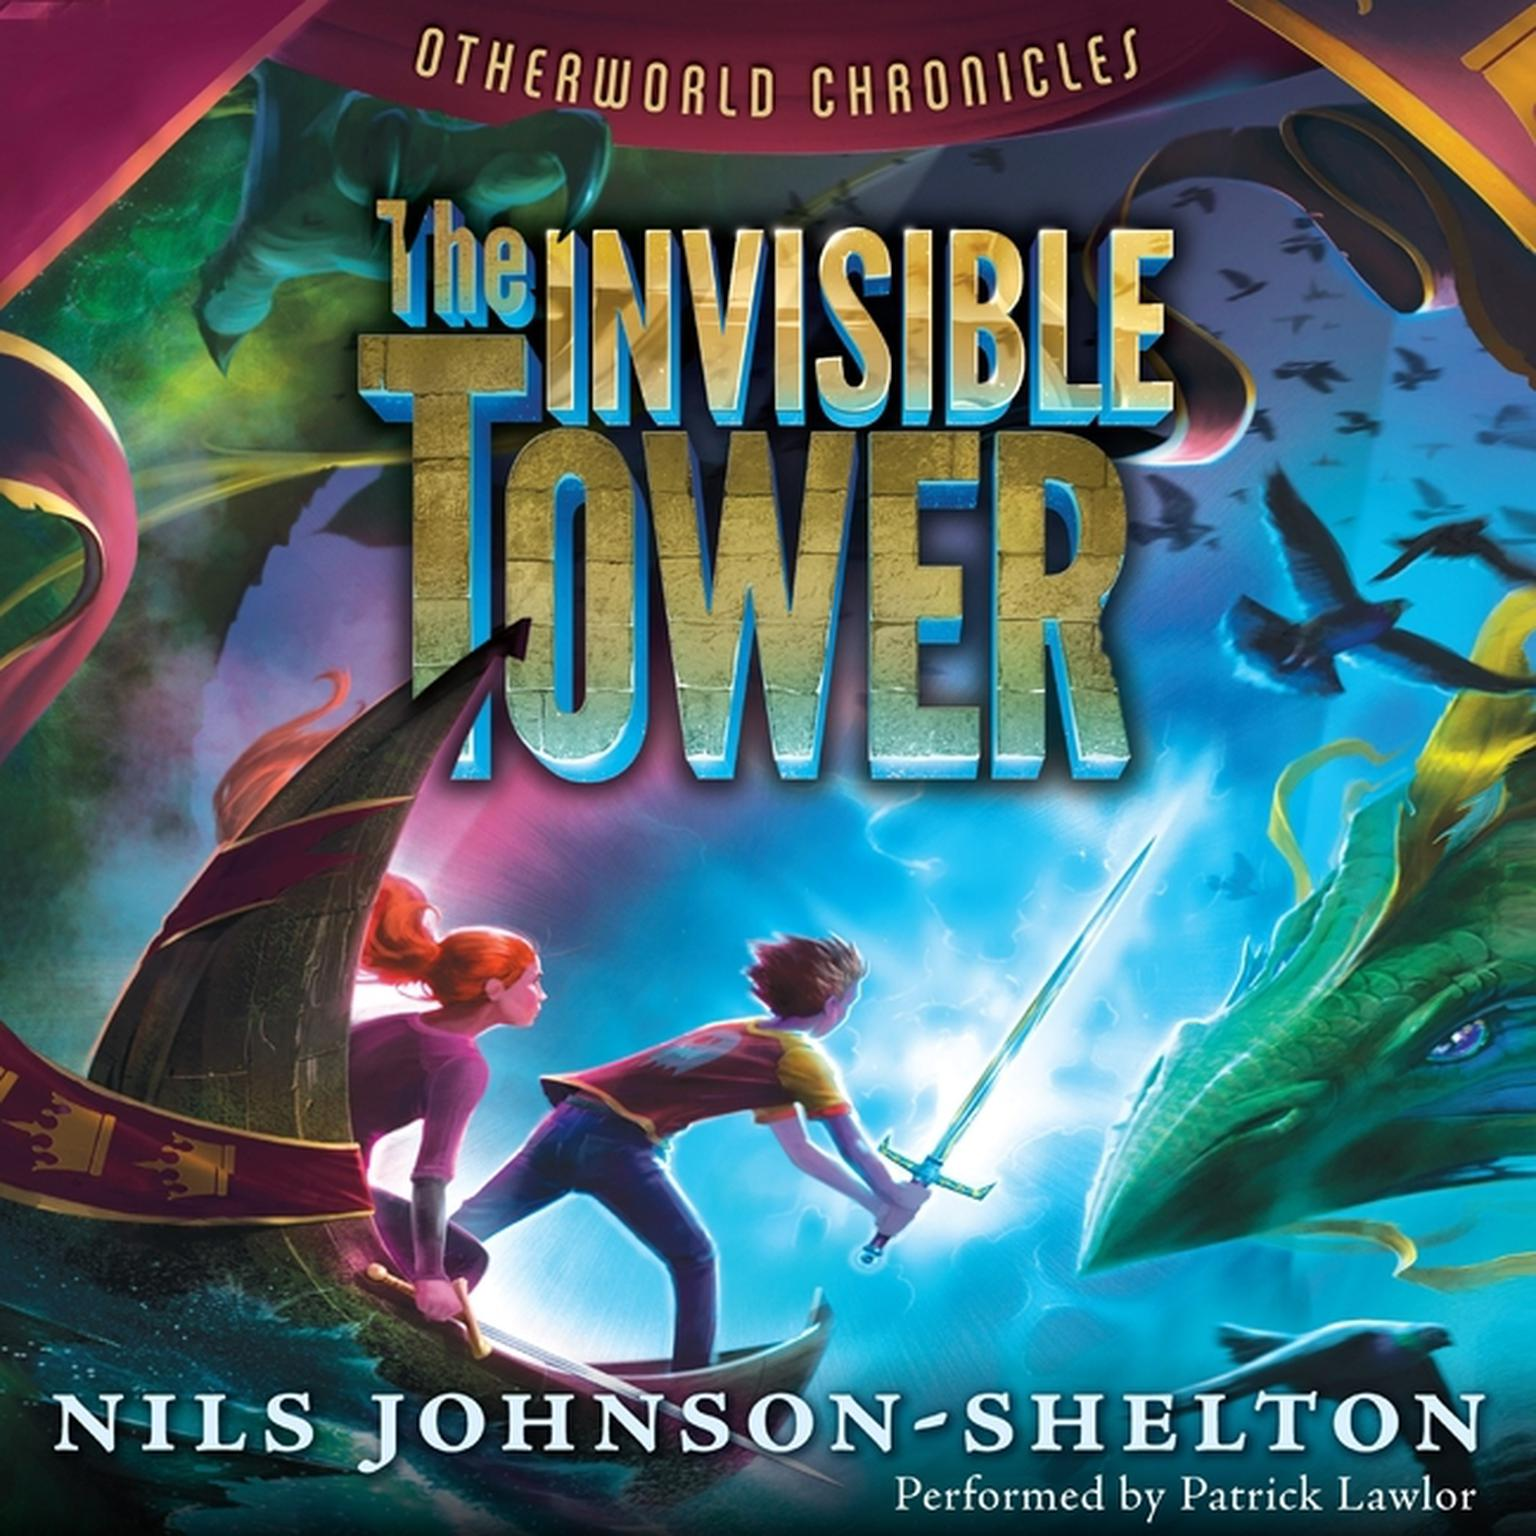 Printable Otherworld Chronicles: The Invisible Tower Audiobook Cover Art